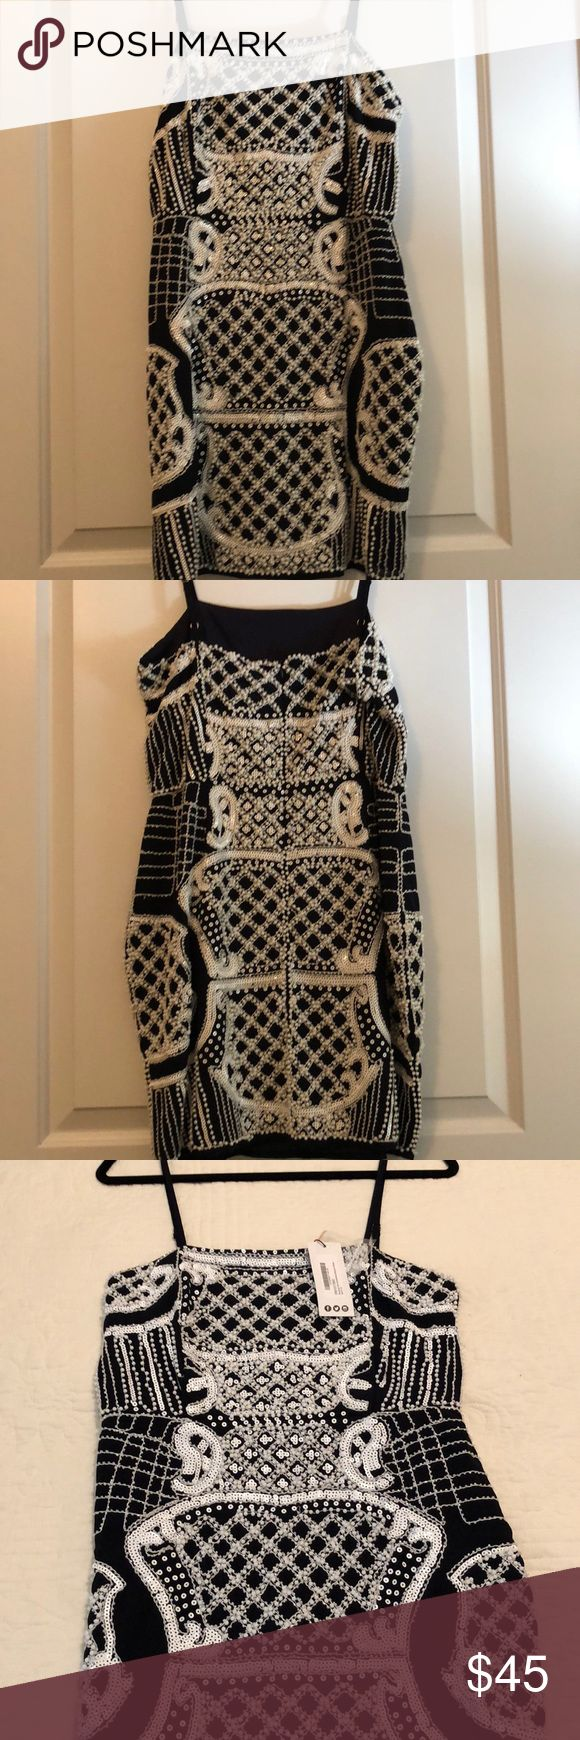 NWT Embellished Dress Very dark, navy blue with white sequins and beading. Beautiful dress. Heavy fabric. Fully lined. Gorgeous on! Dresses Mini